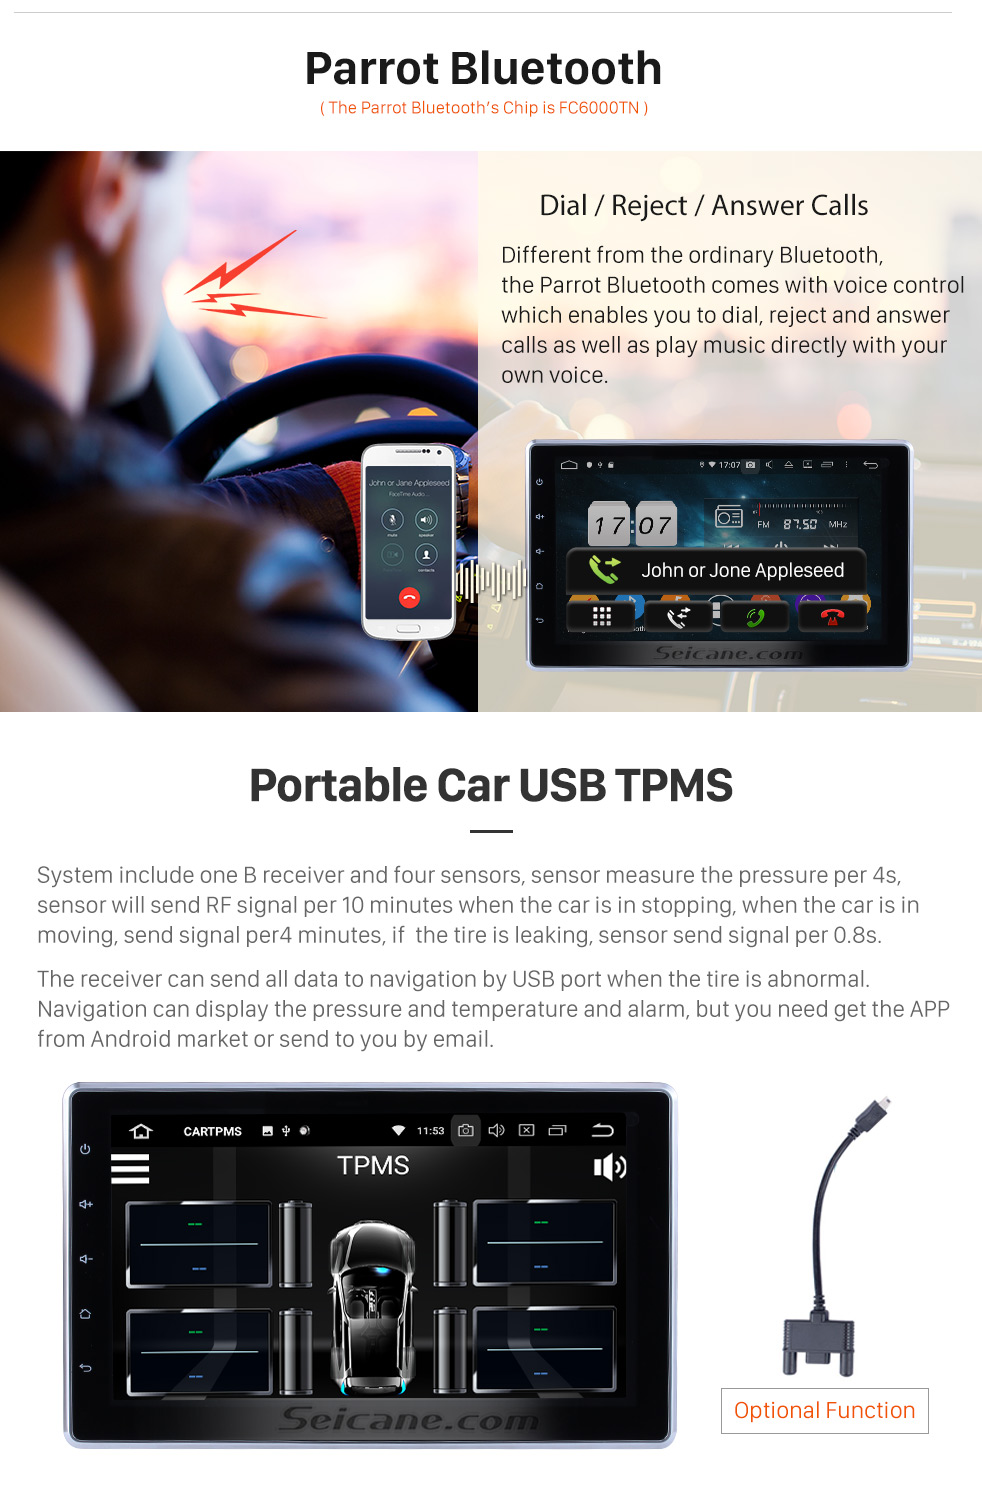 Seicane 10.1 inch 2 DIN Universal 1024*600 Touchscreen Android 9.0 radio GPS Navigation System with WIFI 3G Bluetooth Music USB OBD2 AUX Radio Backup Camera Steering Wheel Control